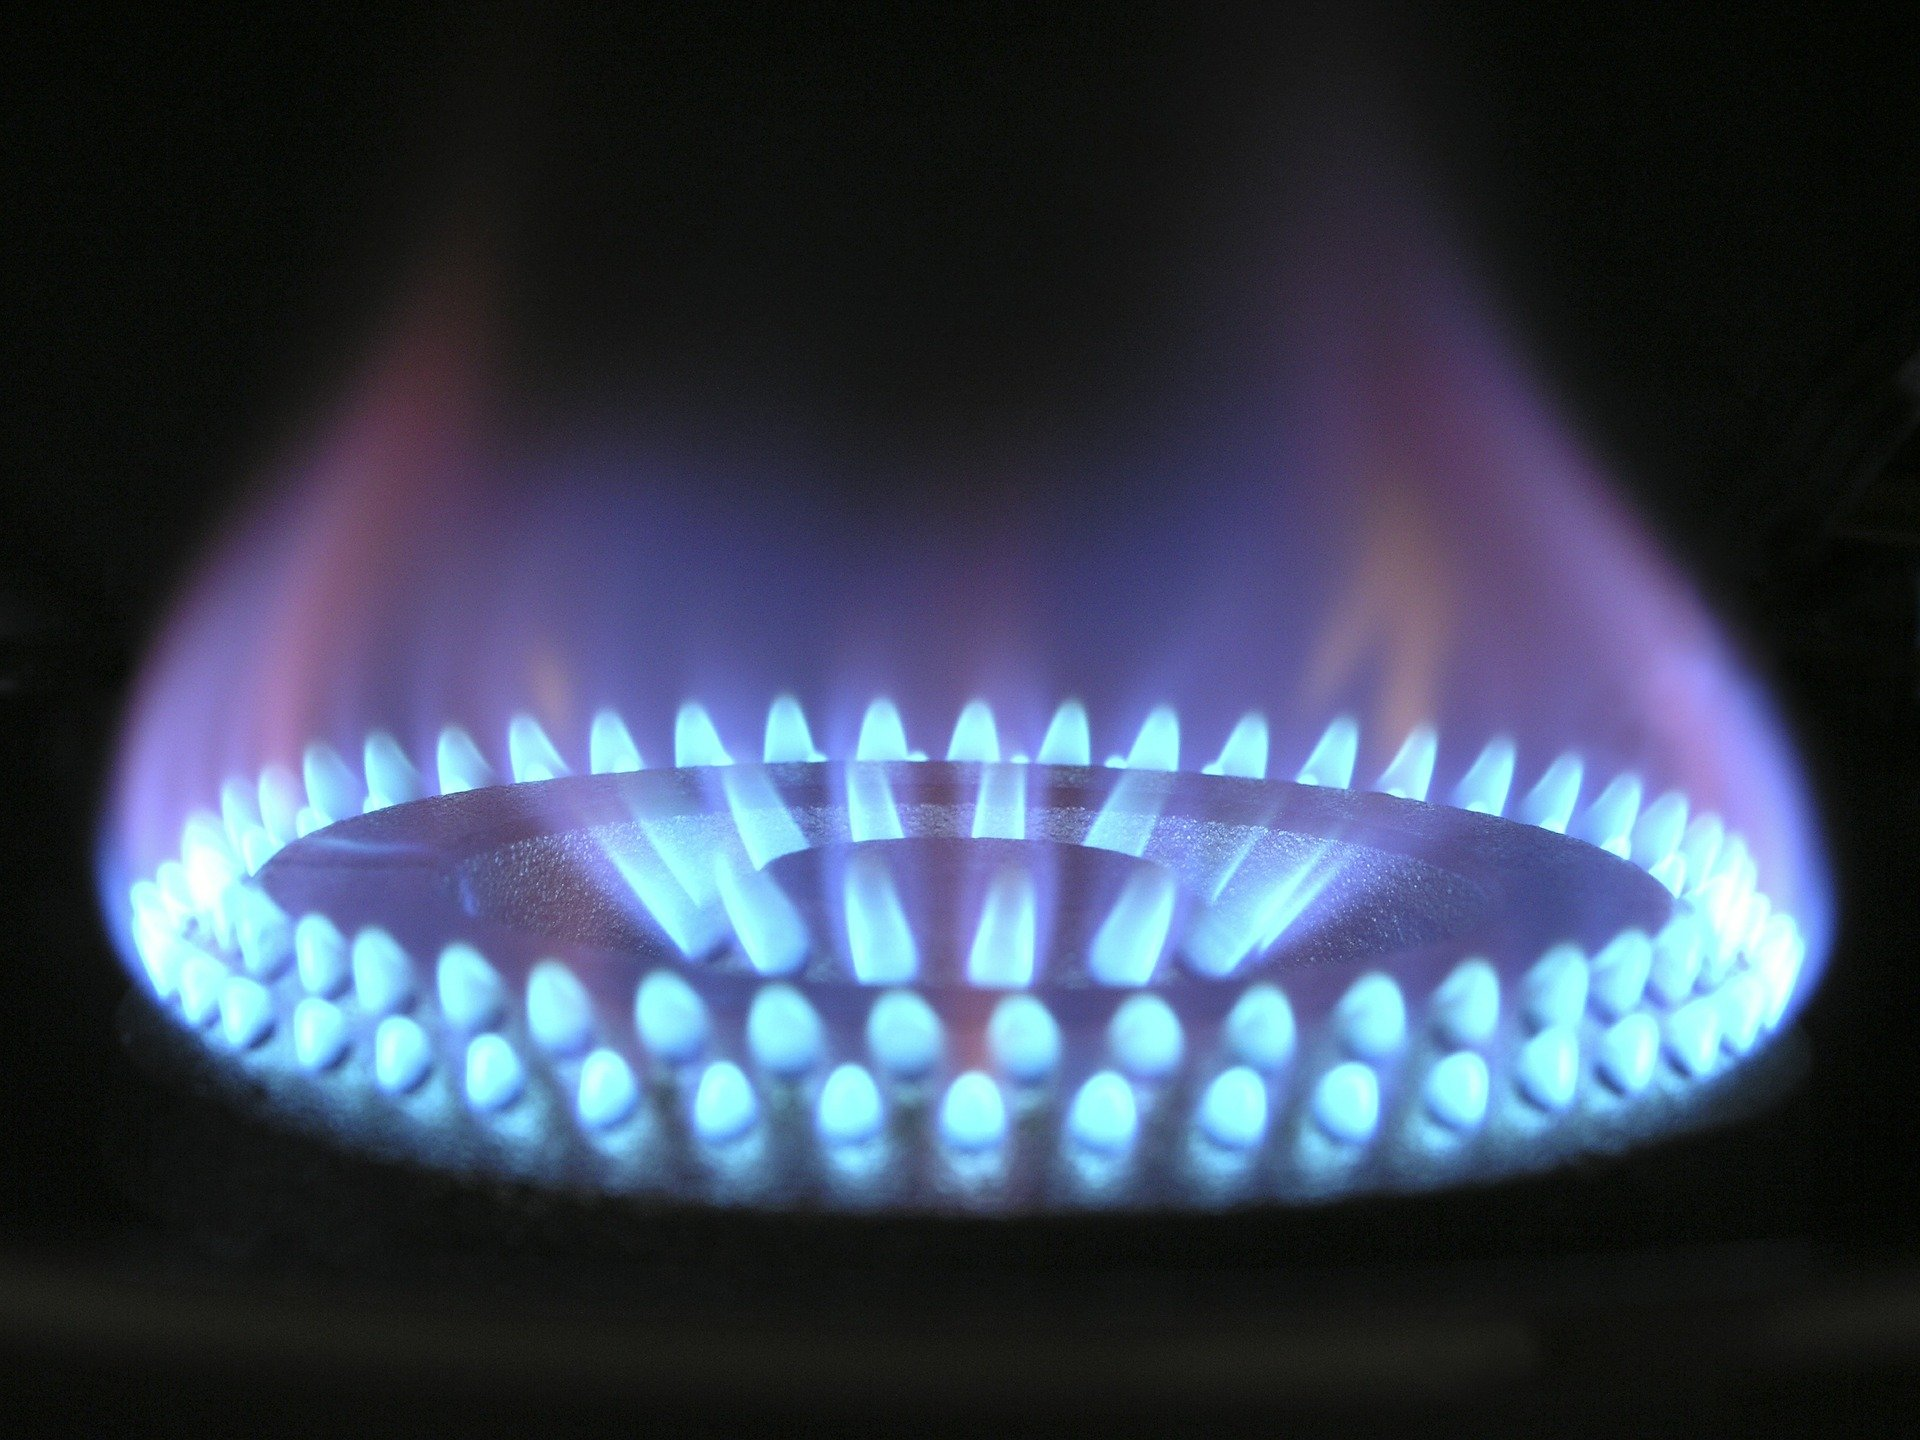 A propane burner with blue flames